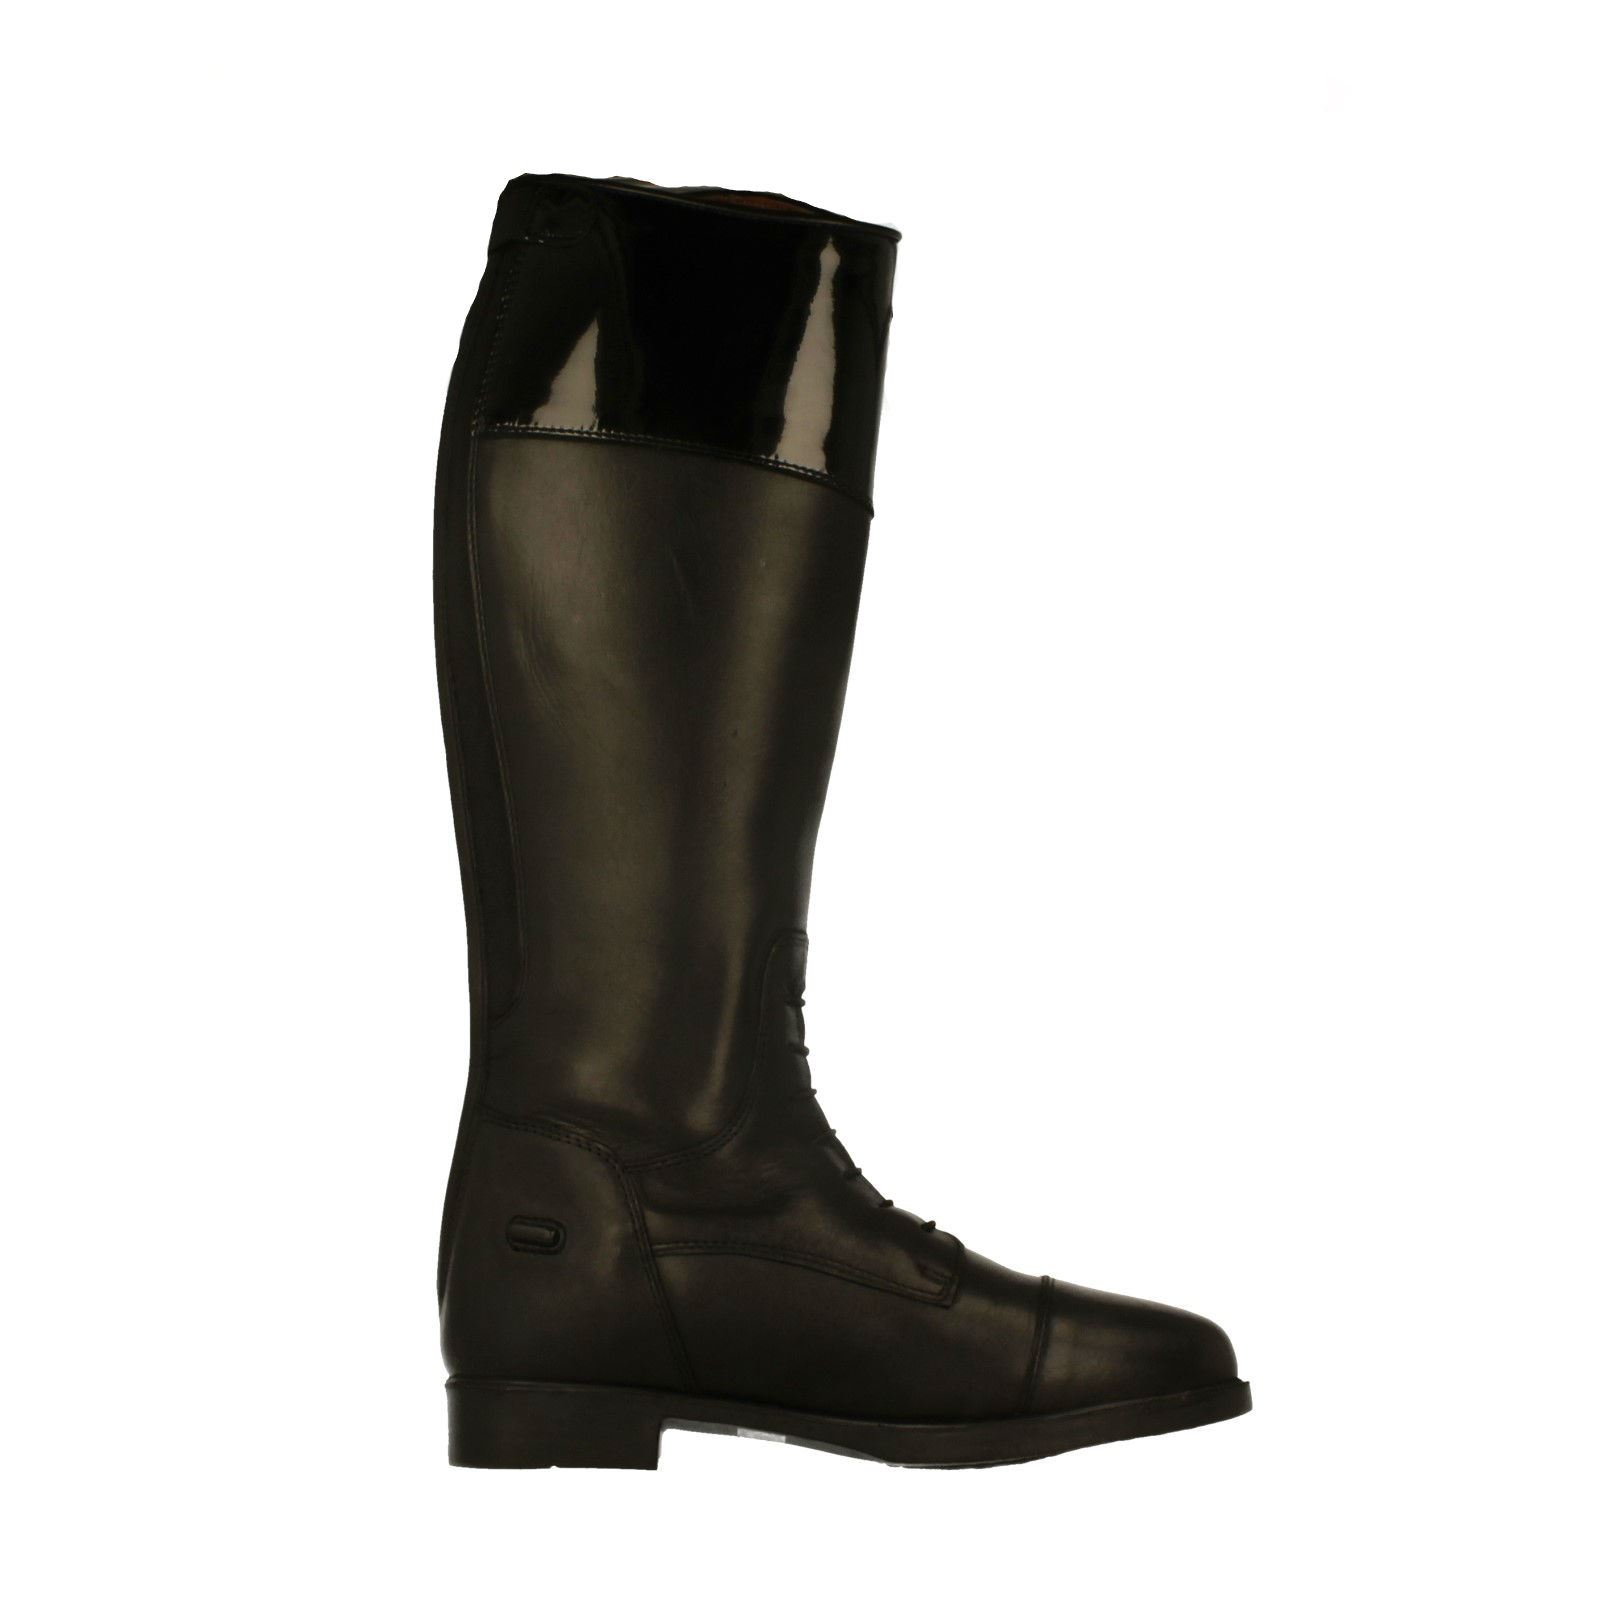 w Style Toggi Riding Ladies Boots black Cayman Black BX7xqP